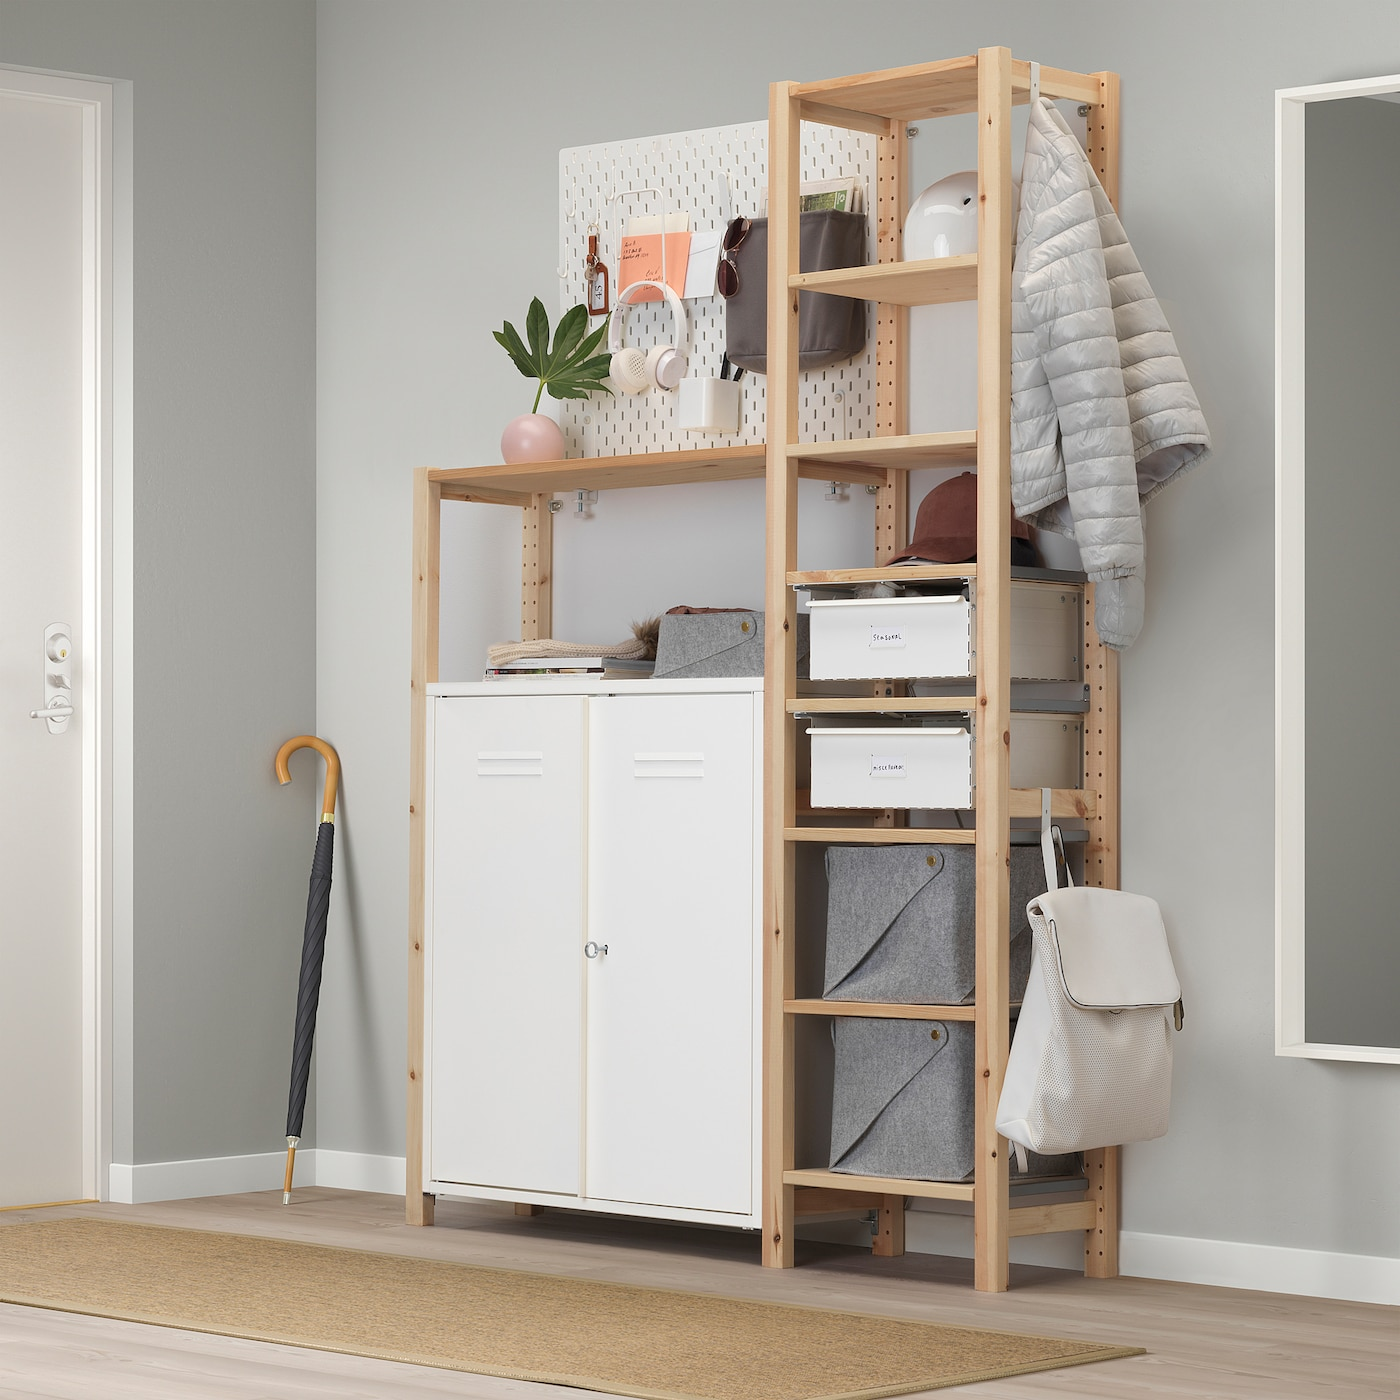 Ivar Cabinet With Doors White Ikea Switzerland